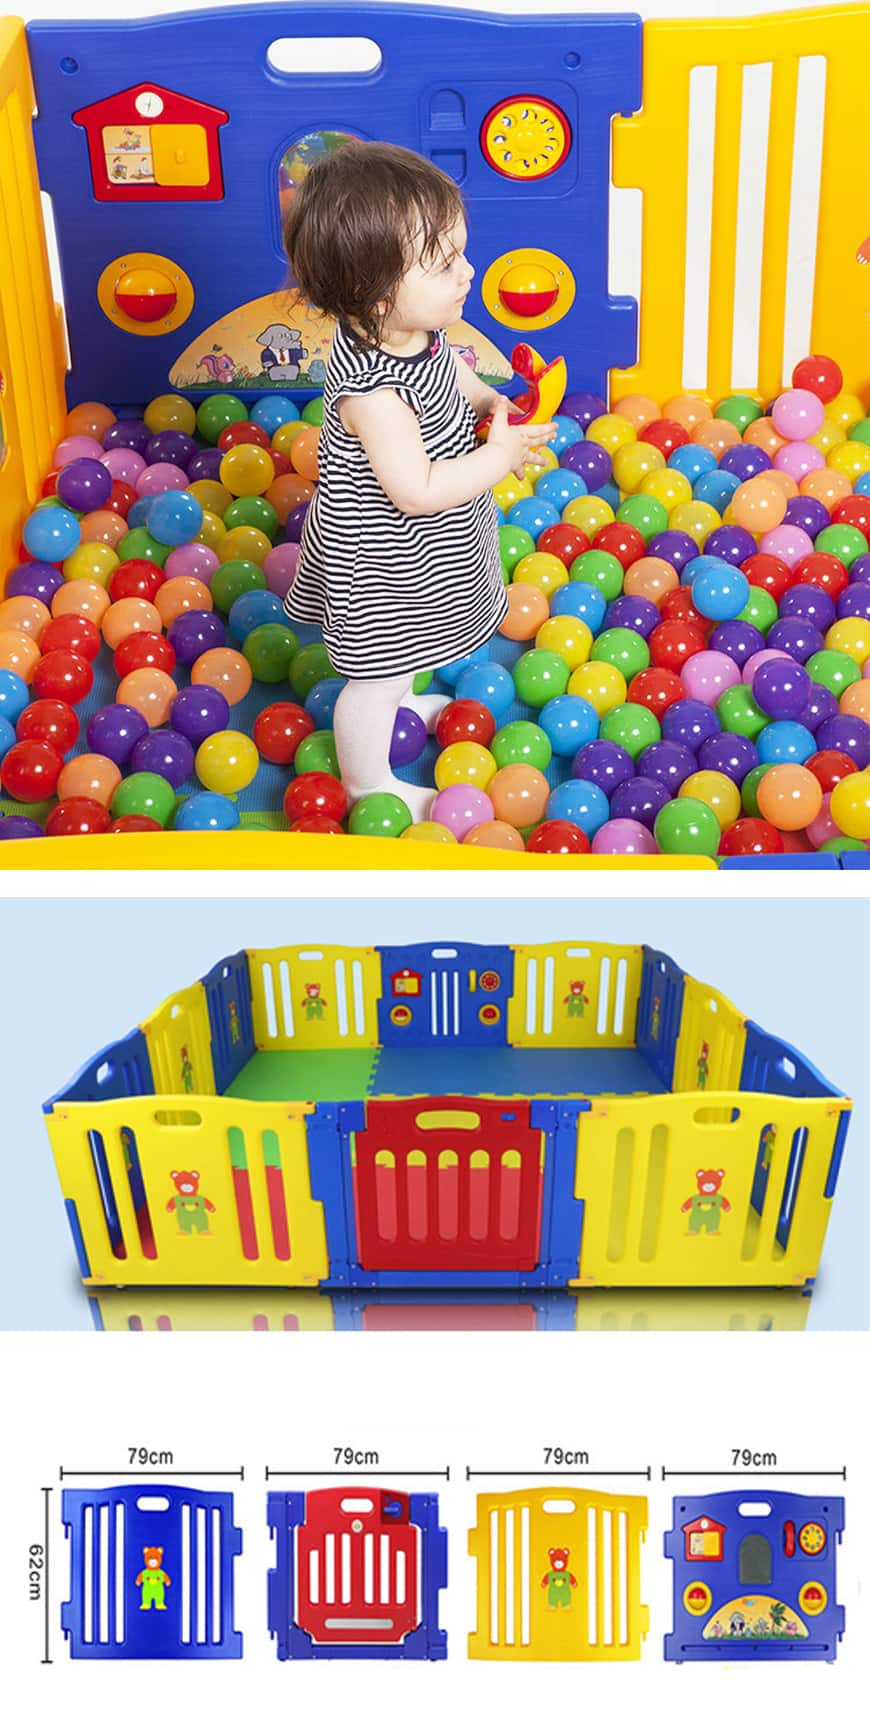 New Baby Playpen Kids 8 or 12 Panel Safety Play Center Yard Home Indoor Outdoor Pen 8 panel $78.60 12 panel $85.10